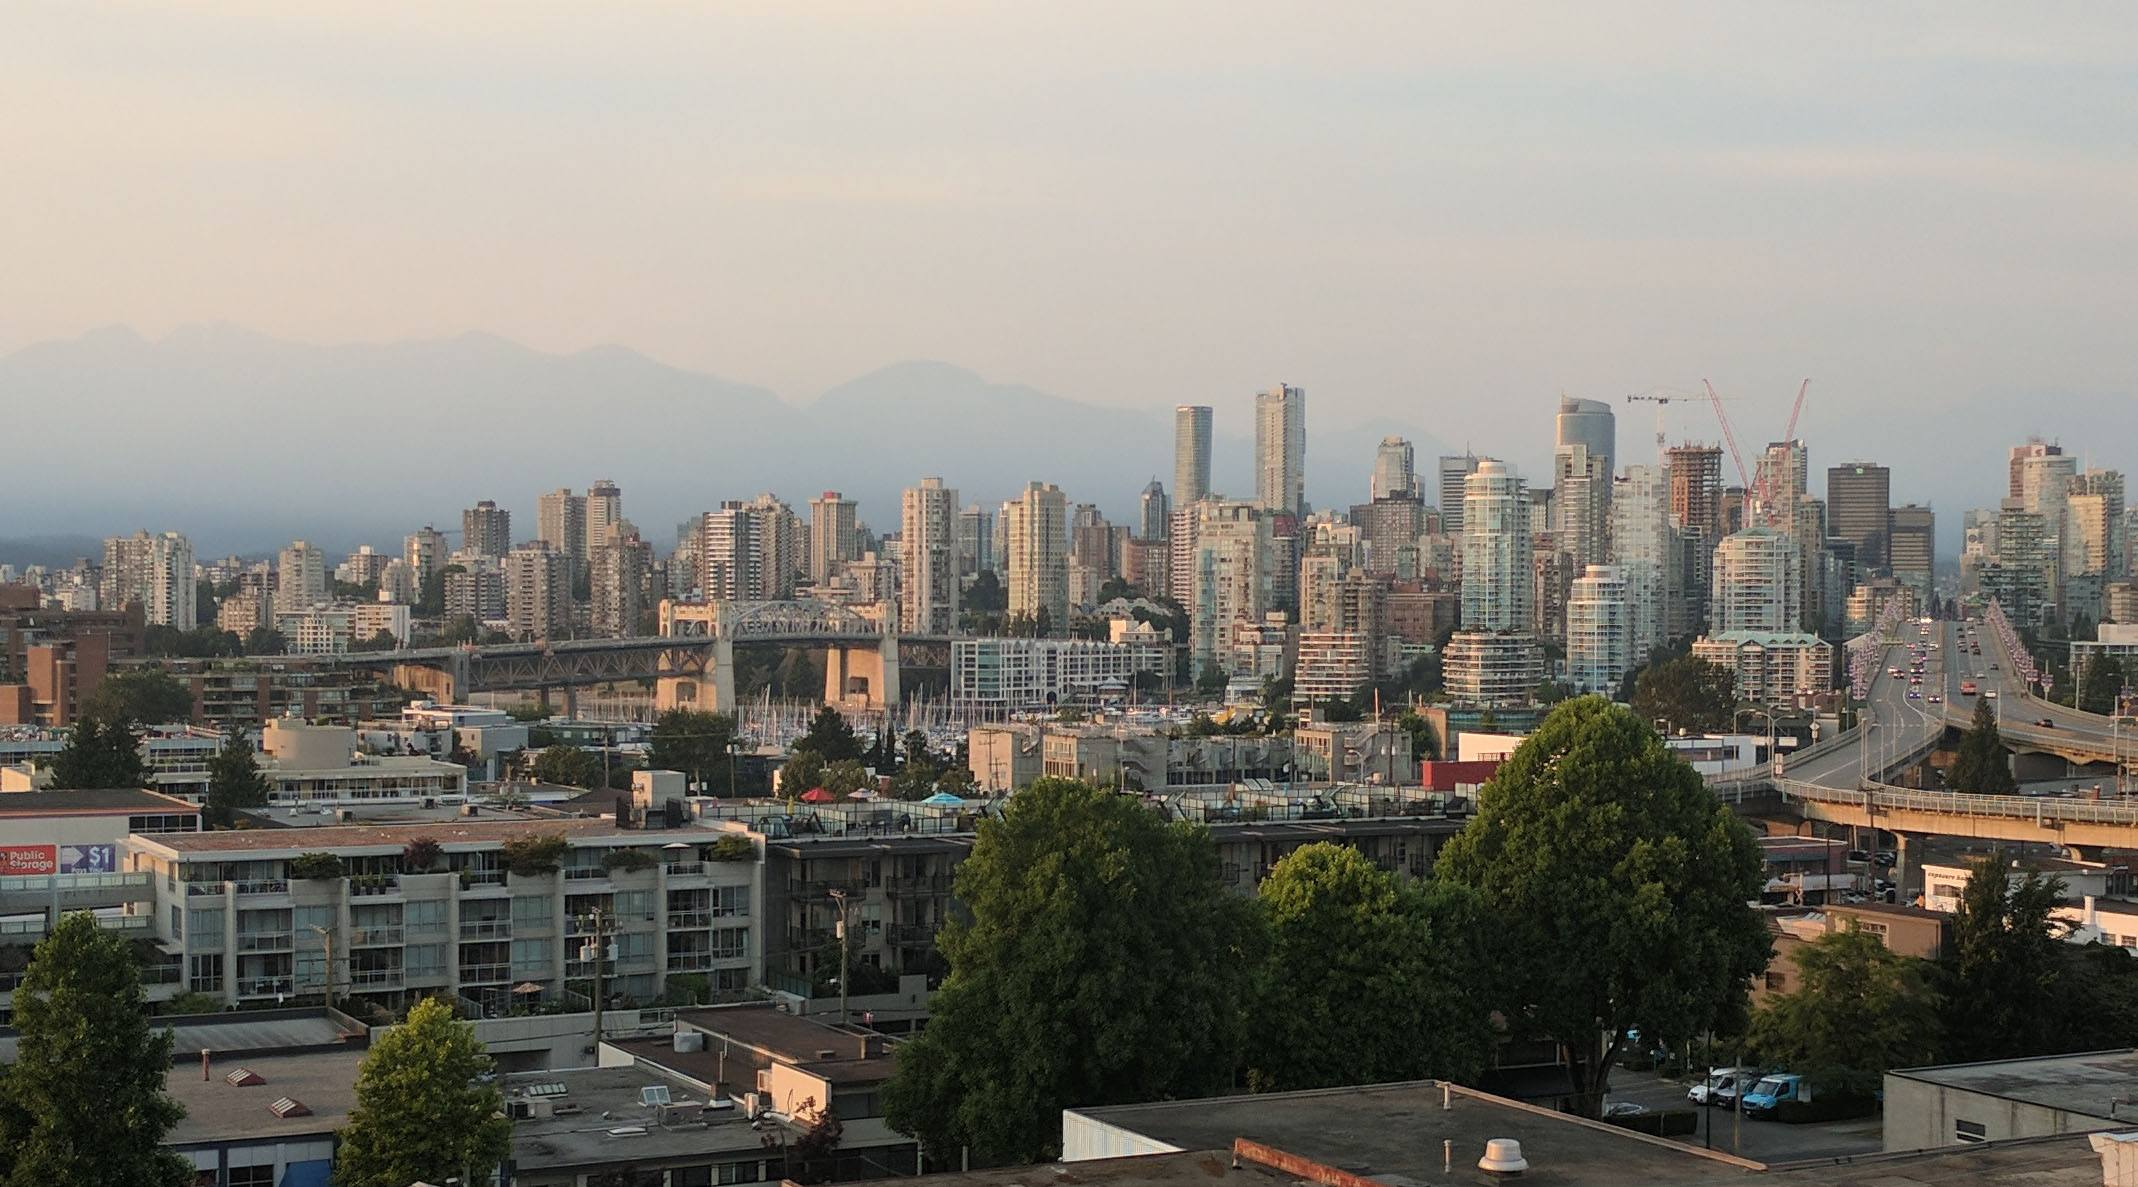 BC wildfire smoke air quality advisory issued in Vancouver (PHOTOS)